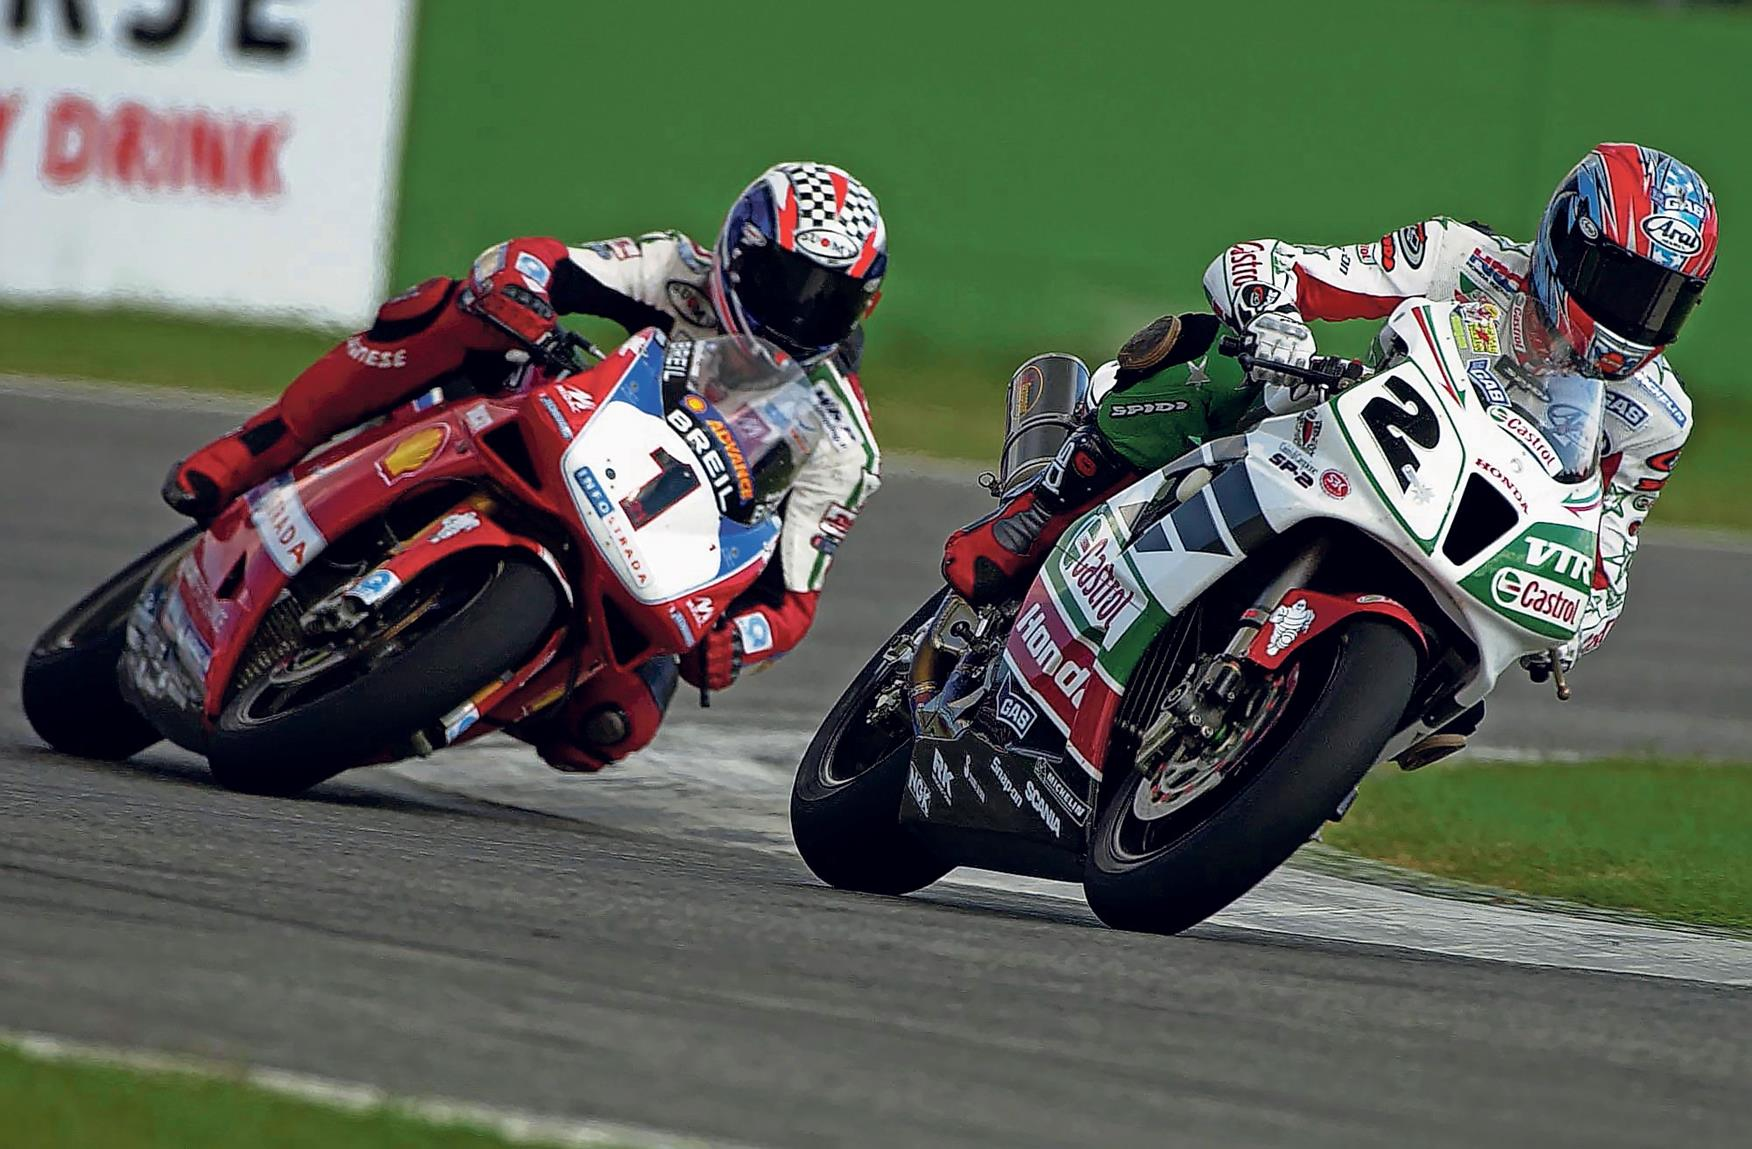 Colin Edwards and Troy Bayliss battle hard at Imola in 2002